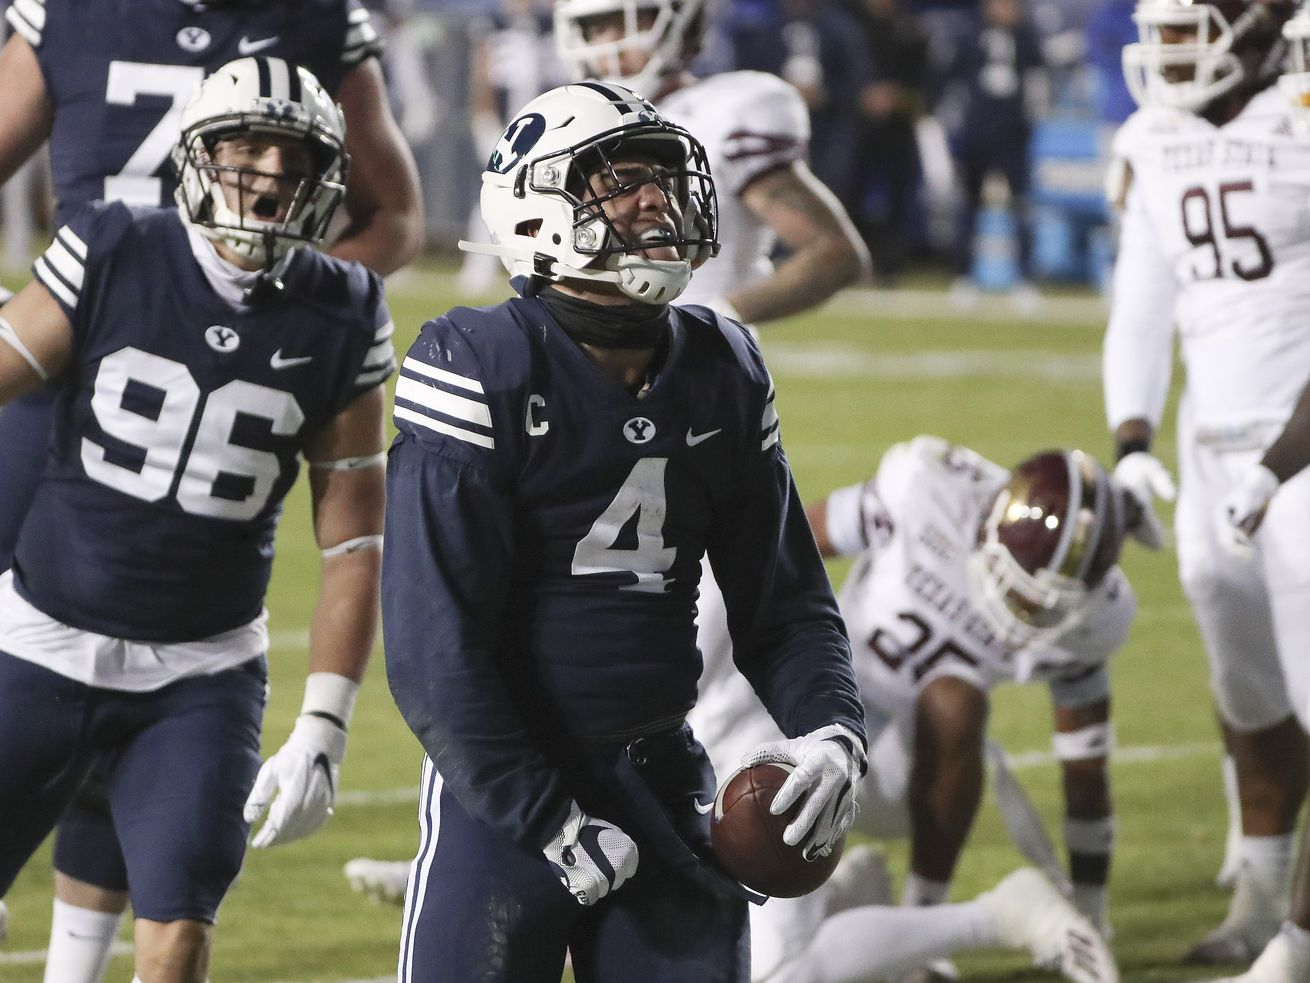 BYU scores 49 straight points en route to blasting Texas State, 52-14